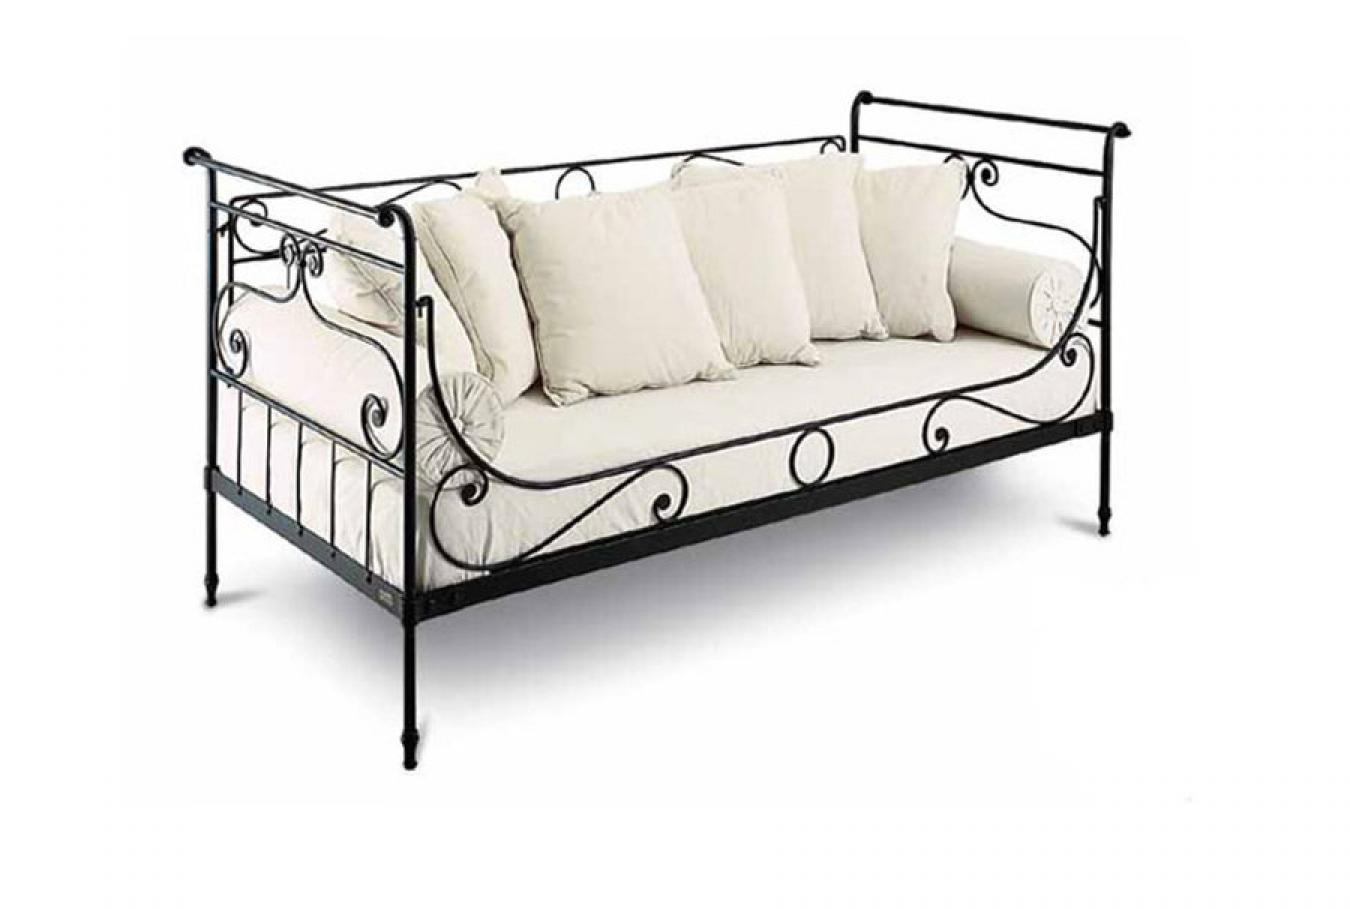 canape 2 places habitat 15 full canape en fer forge convertible. Black Bedroom Furniture Sets. Home Design Ideas